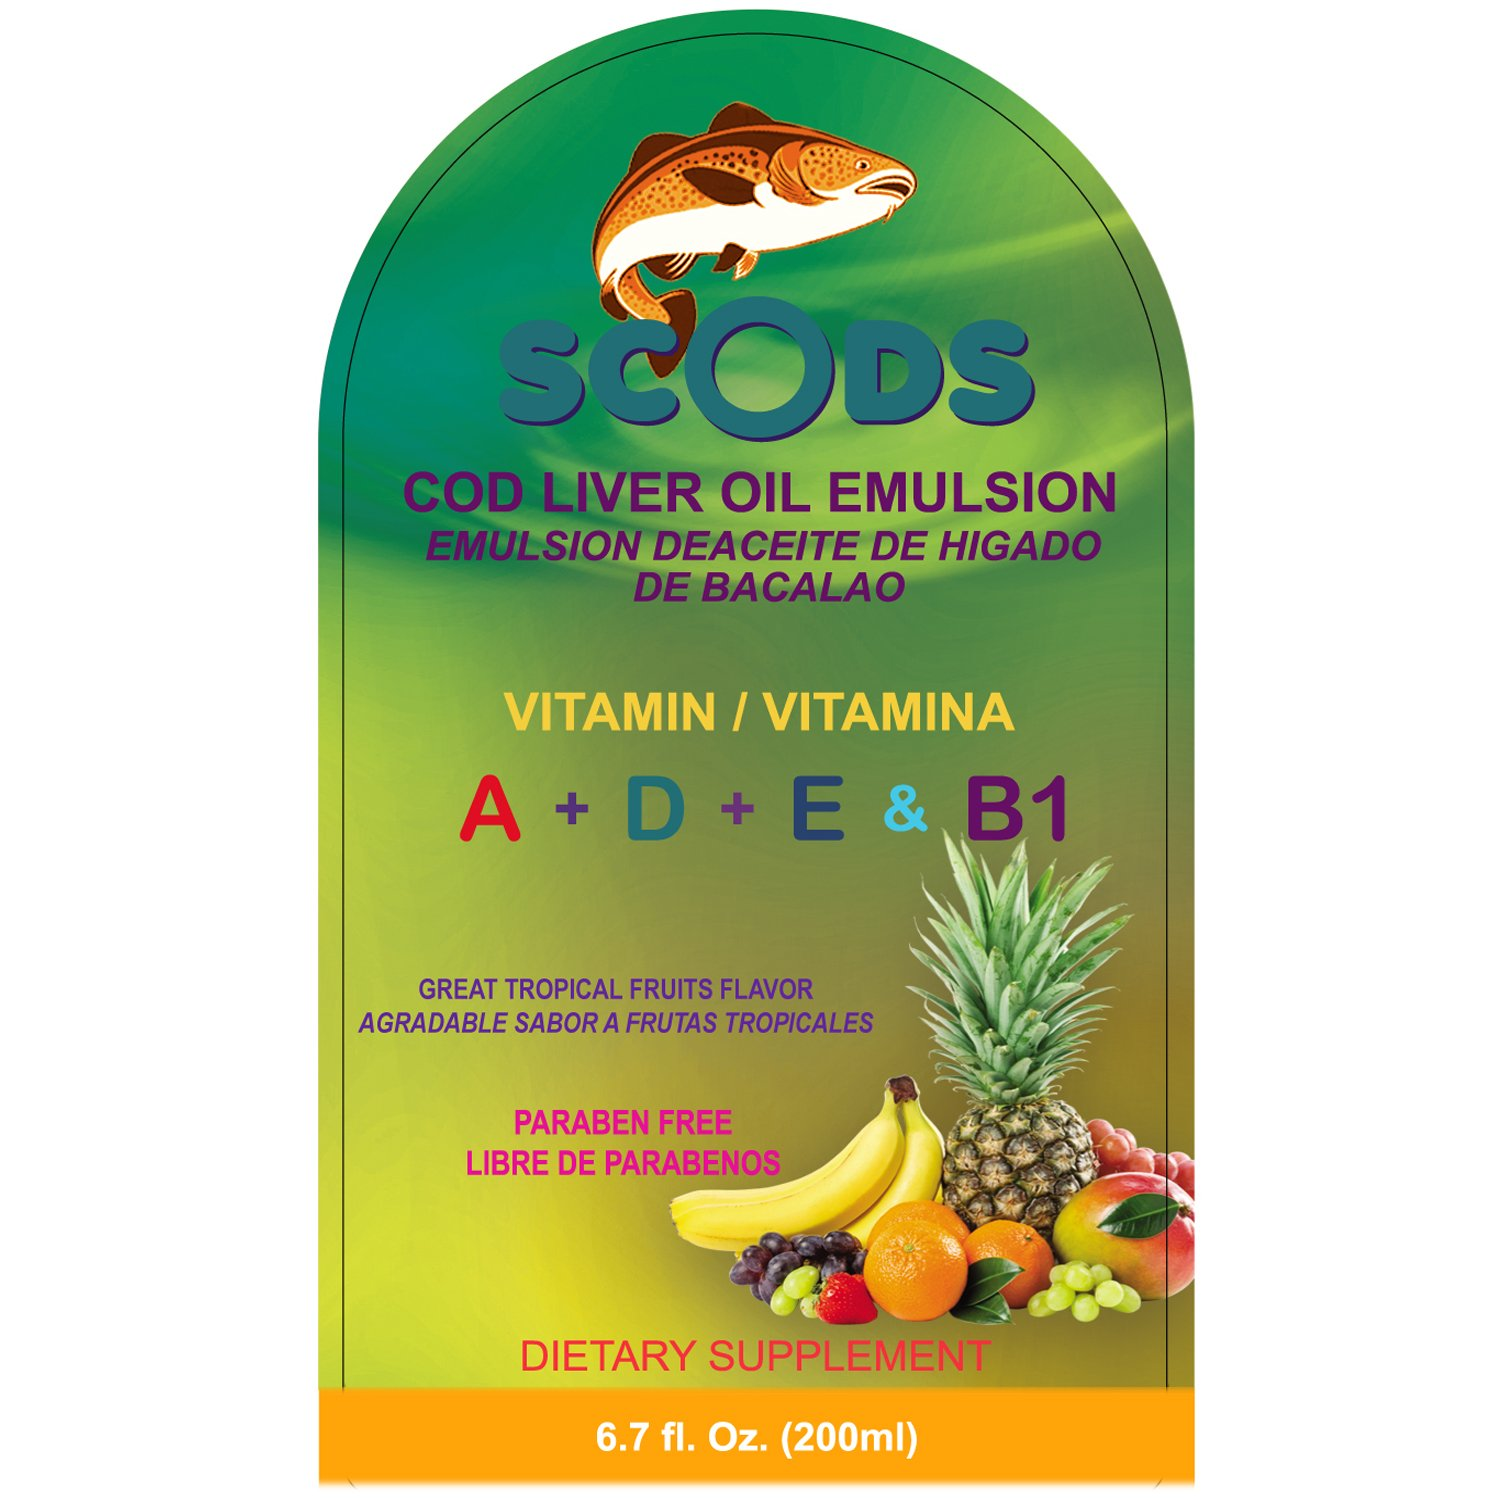 Amazon.com: Emulsion de Scods Frutas Tropicales Cod Liver Oil Emulsion Tropical Fruits 200ml Vitamin A + D + E & B1: Health & Personal Care